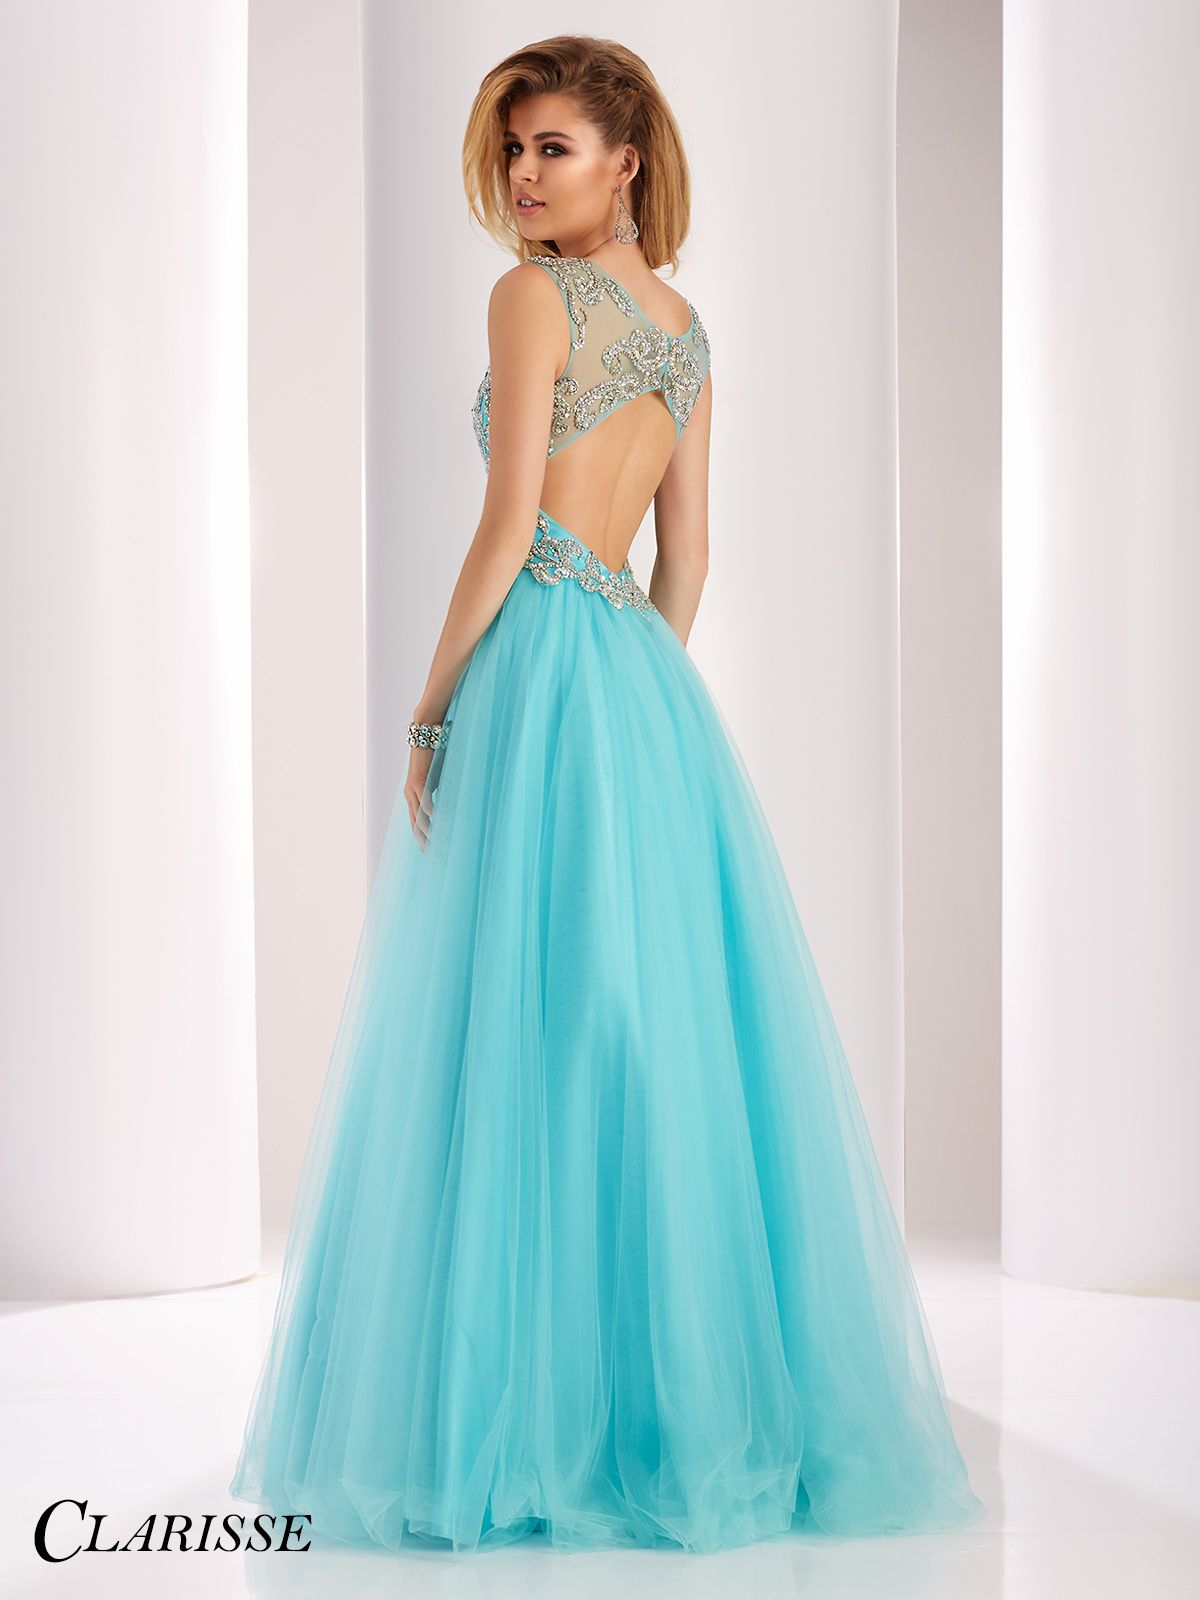 Sparkling V-Neck Ball Gown 3019 | Ball gowns, Prom and Gowns